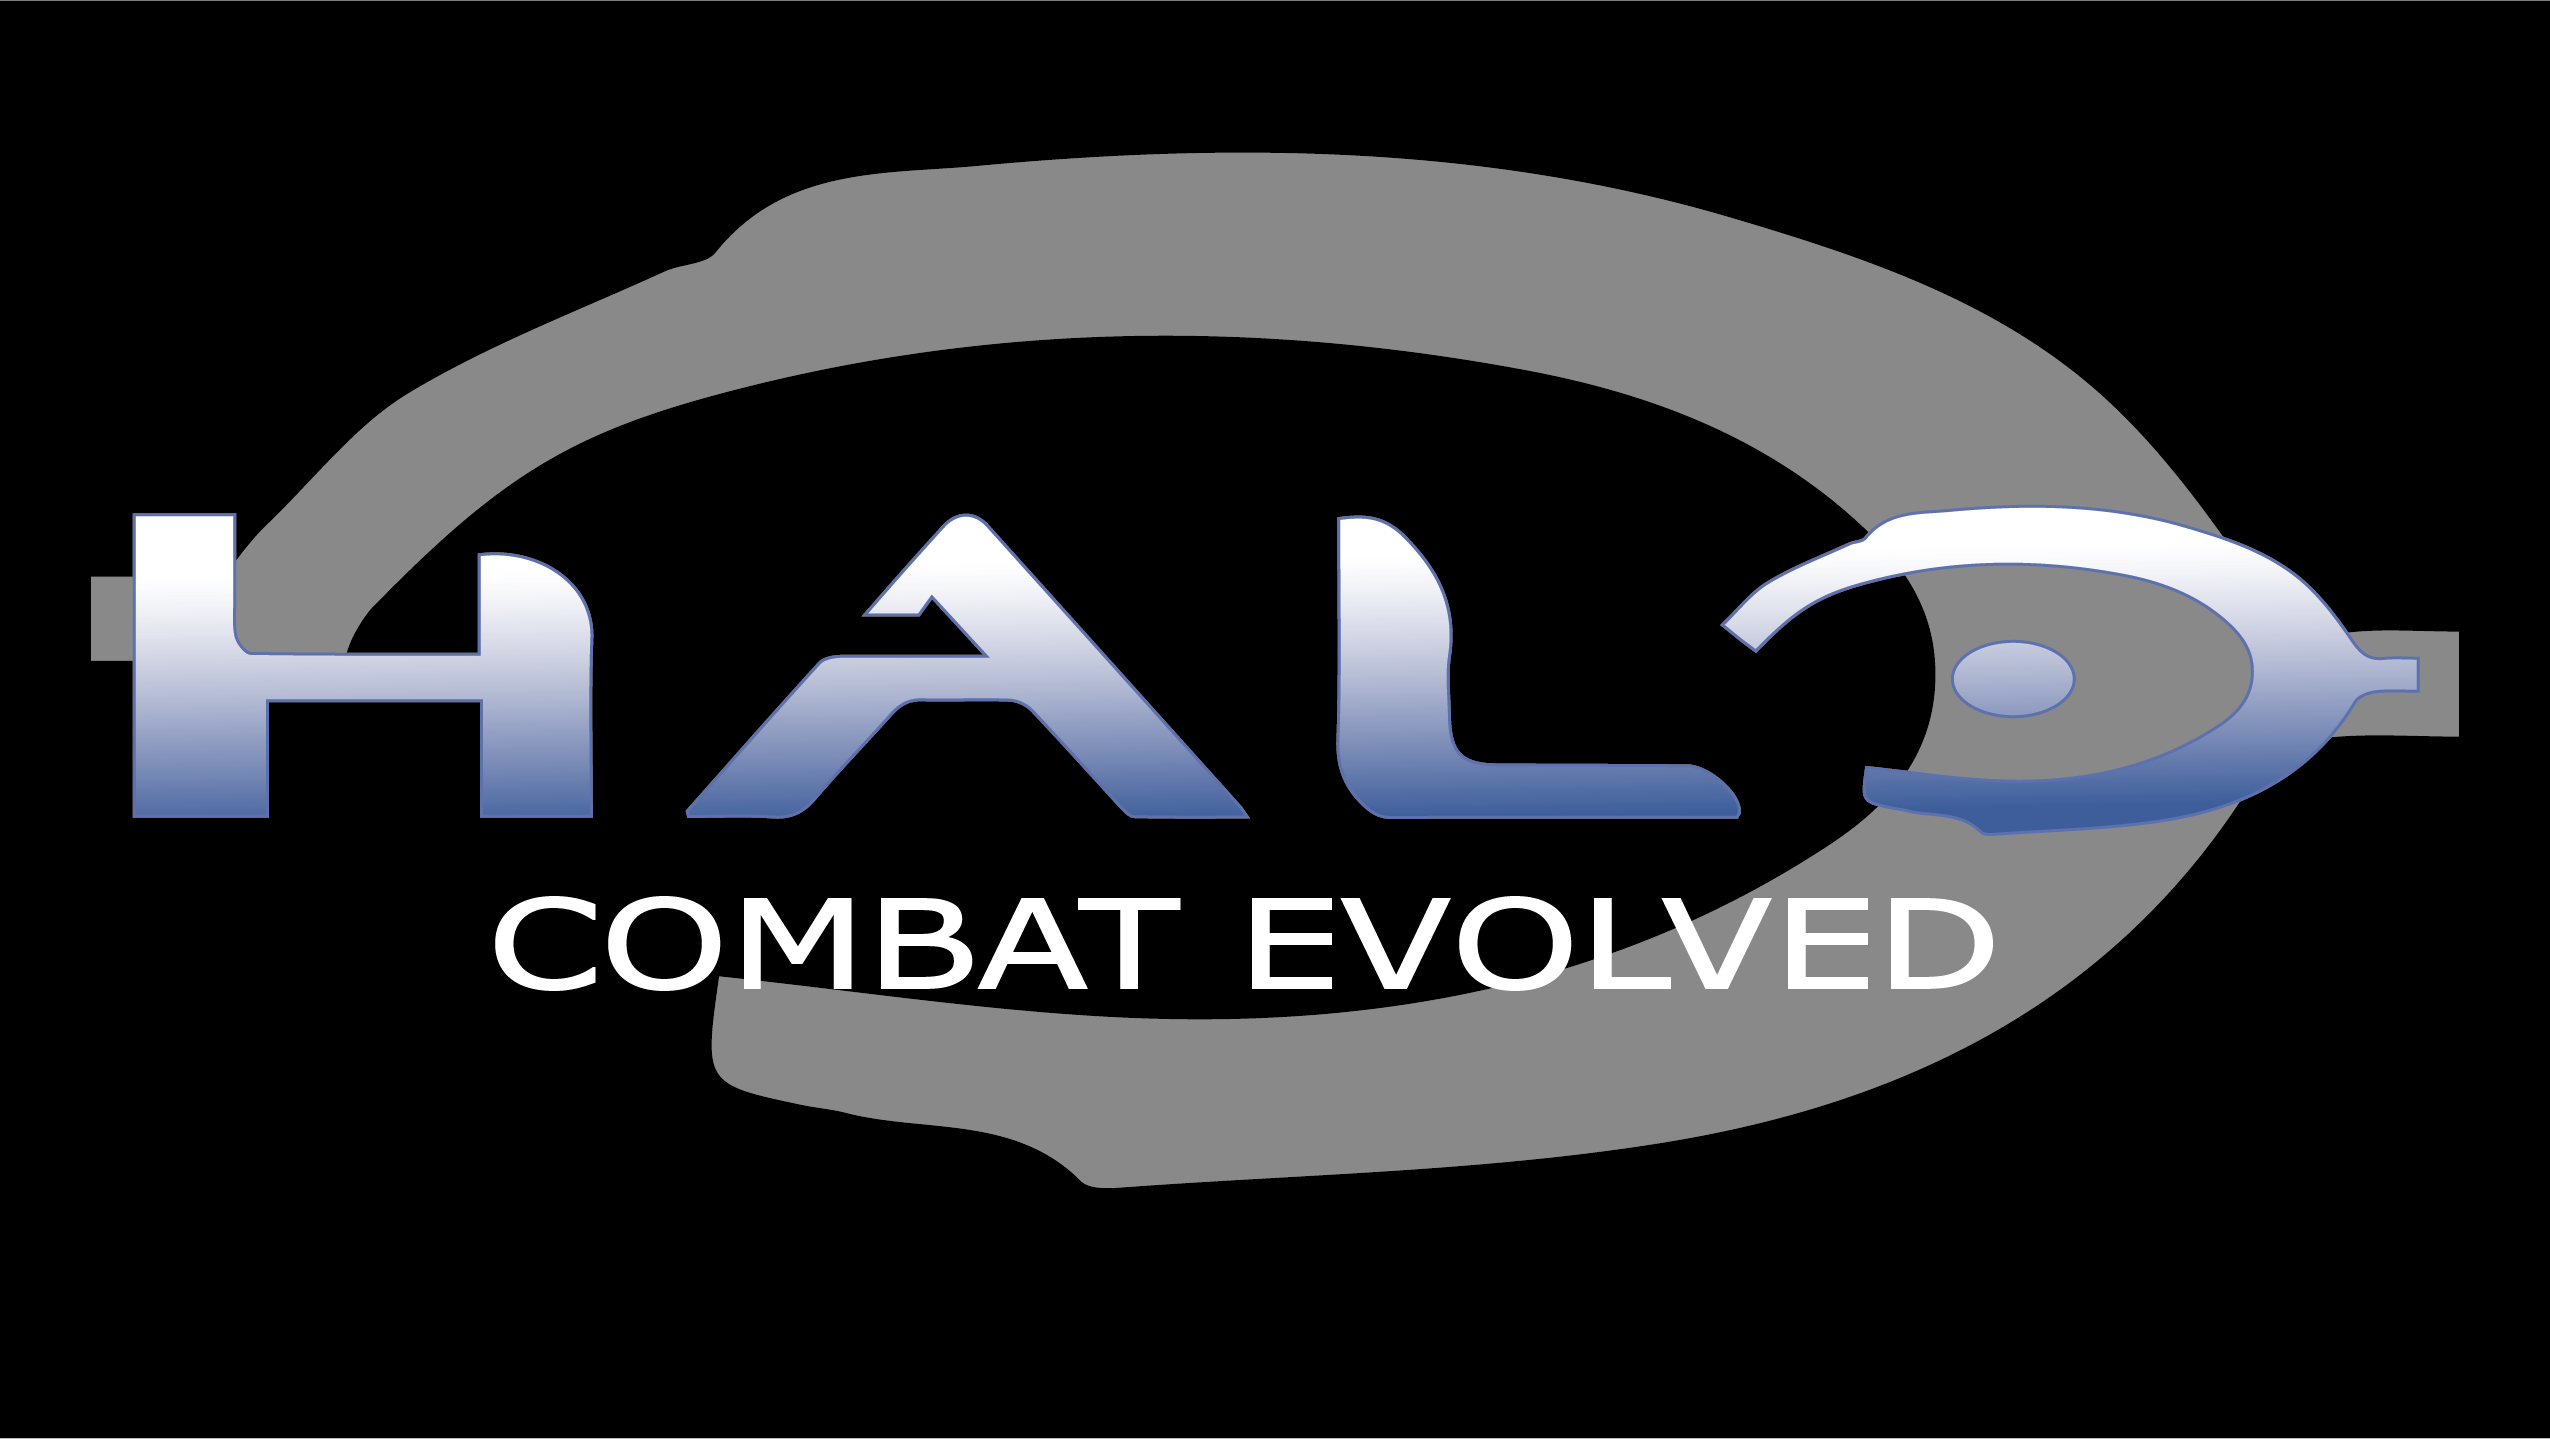 download halo combat evolved full version for windows 7